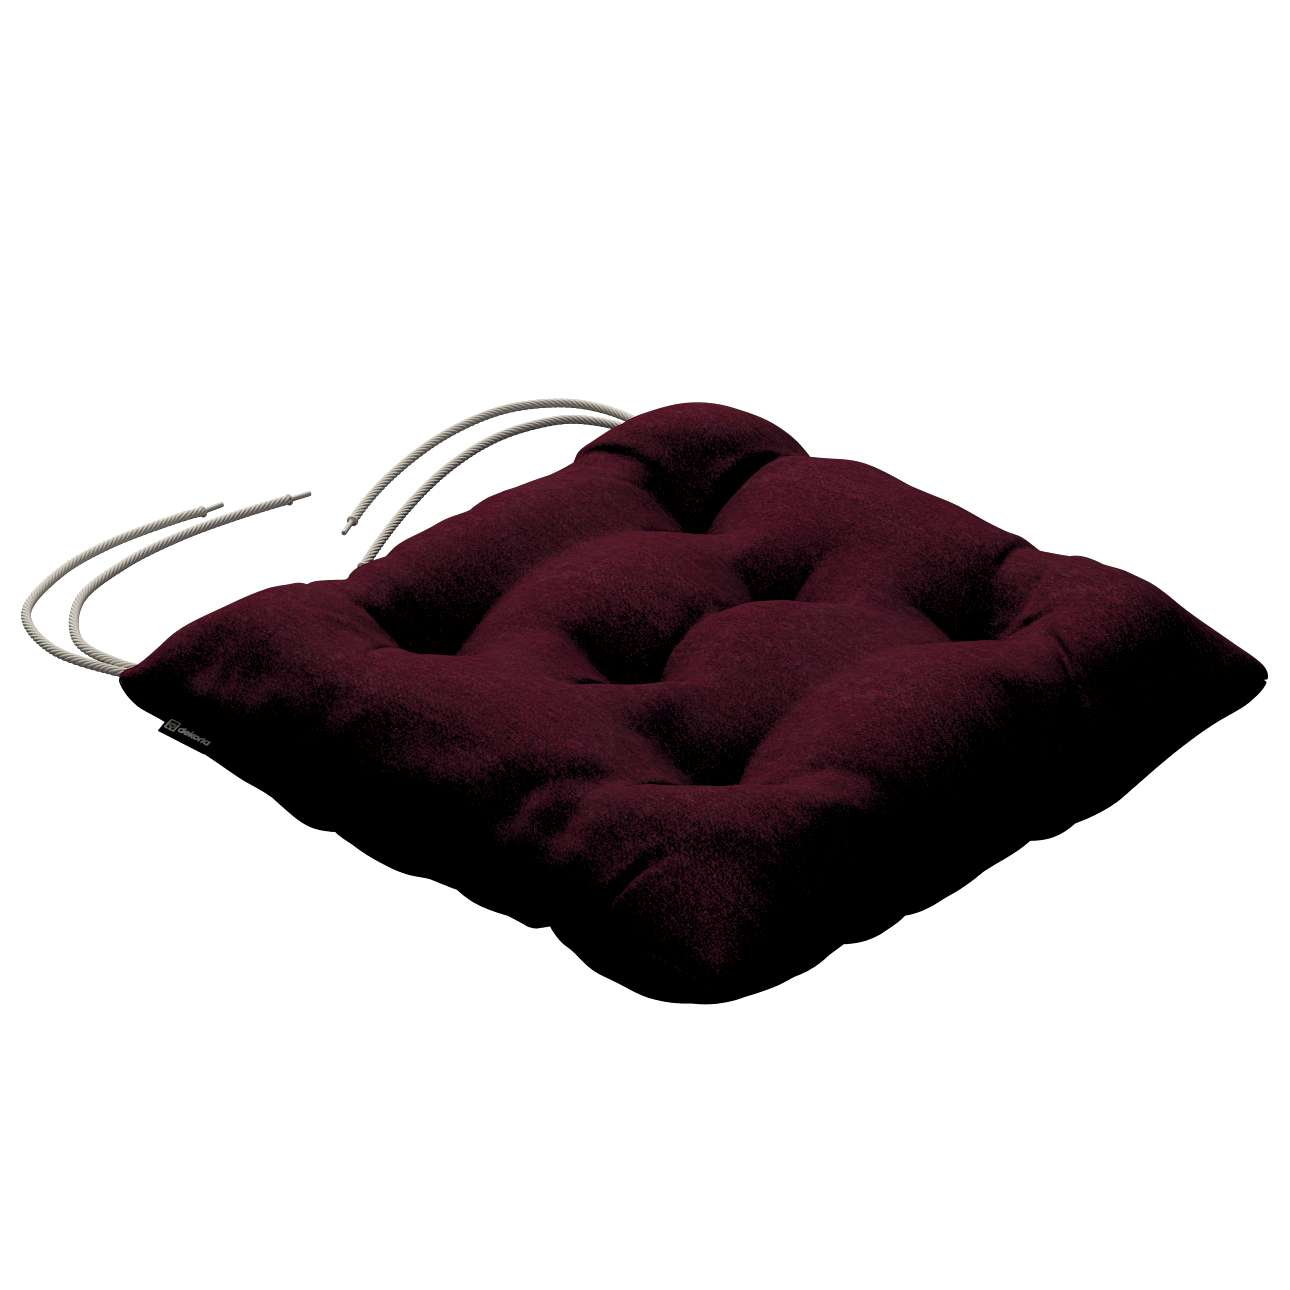 Jack seat pad with ties in collection Chenille, fabric: 702-19